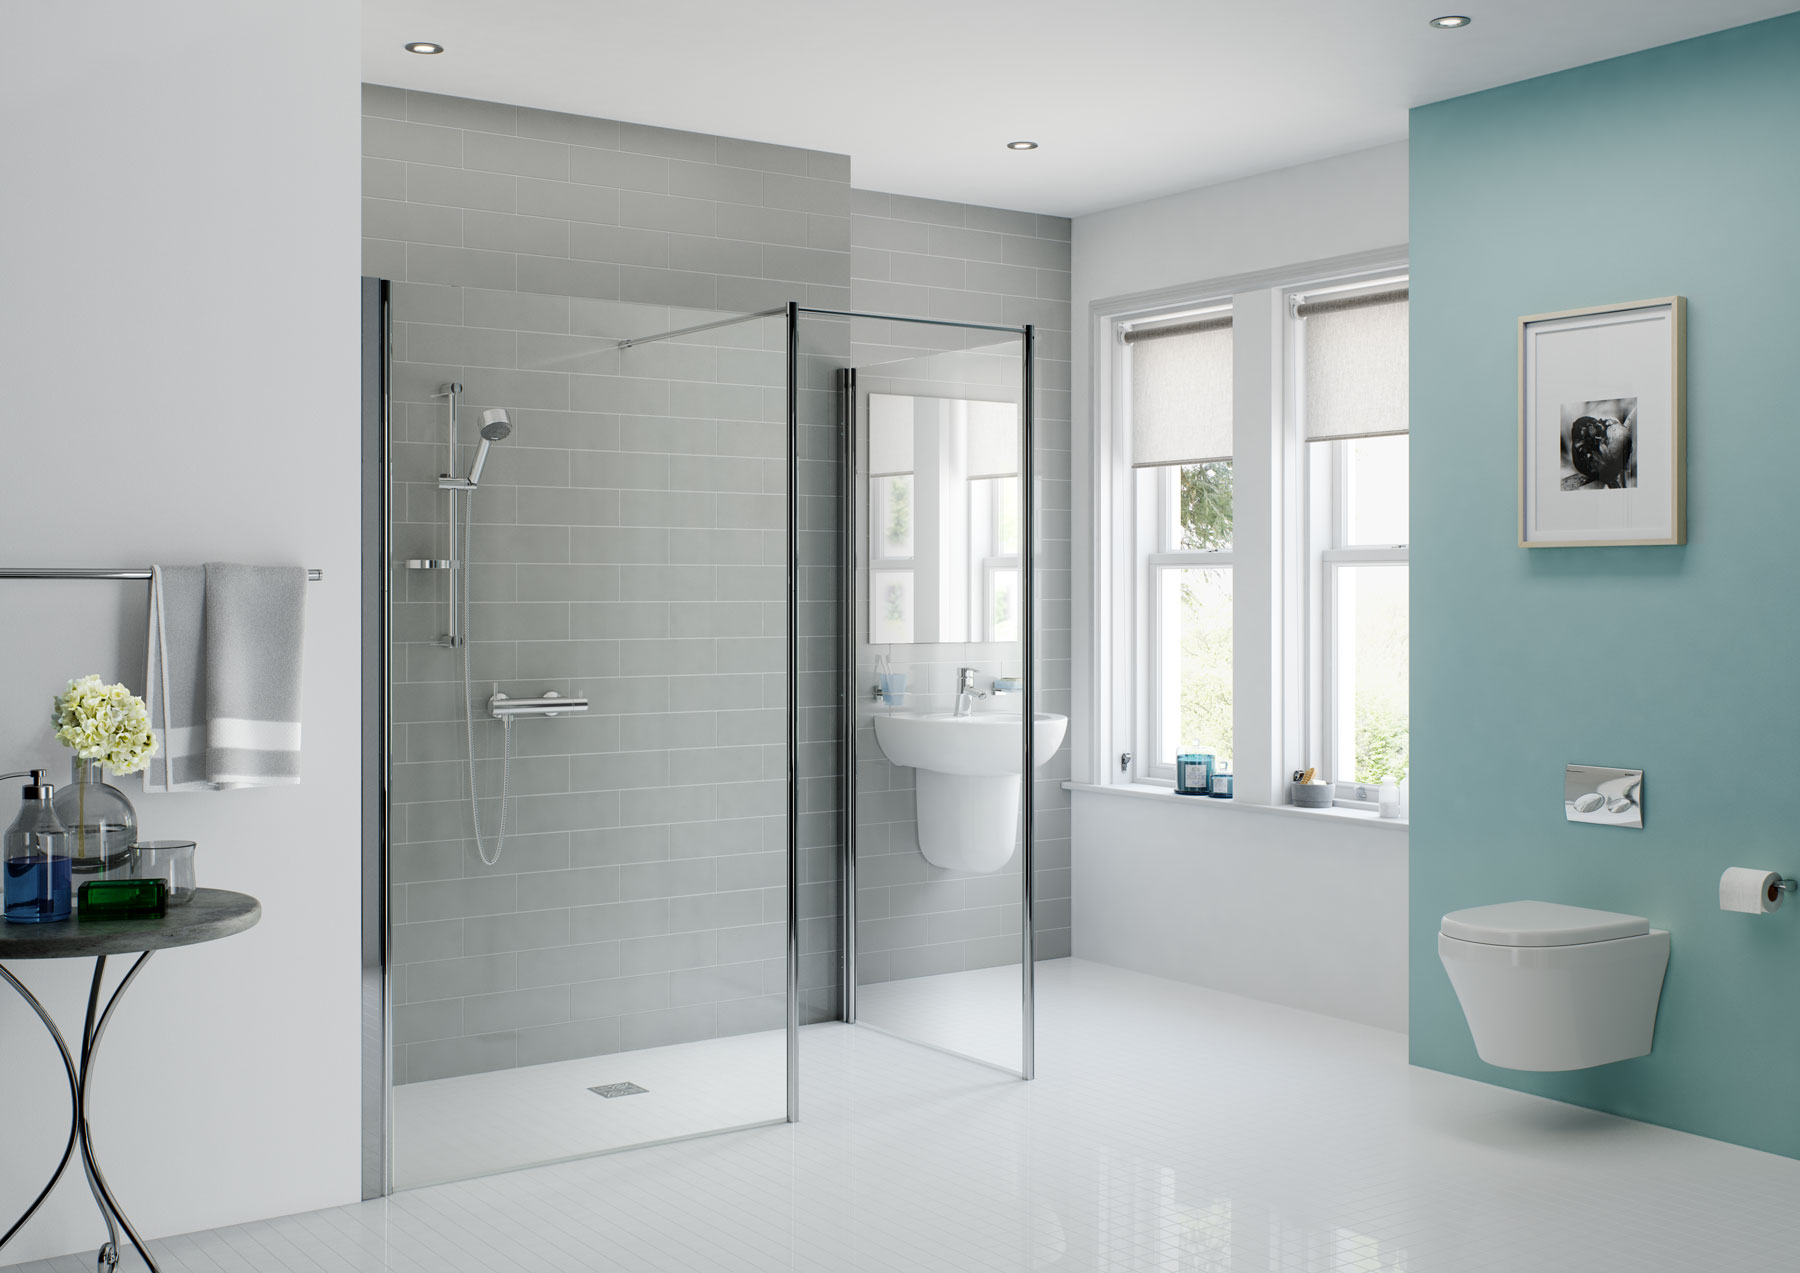 AKW Bathroom and Kitchen Soultions - Herts Bathrooms